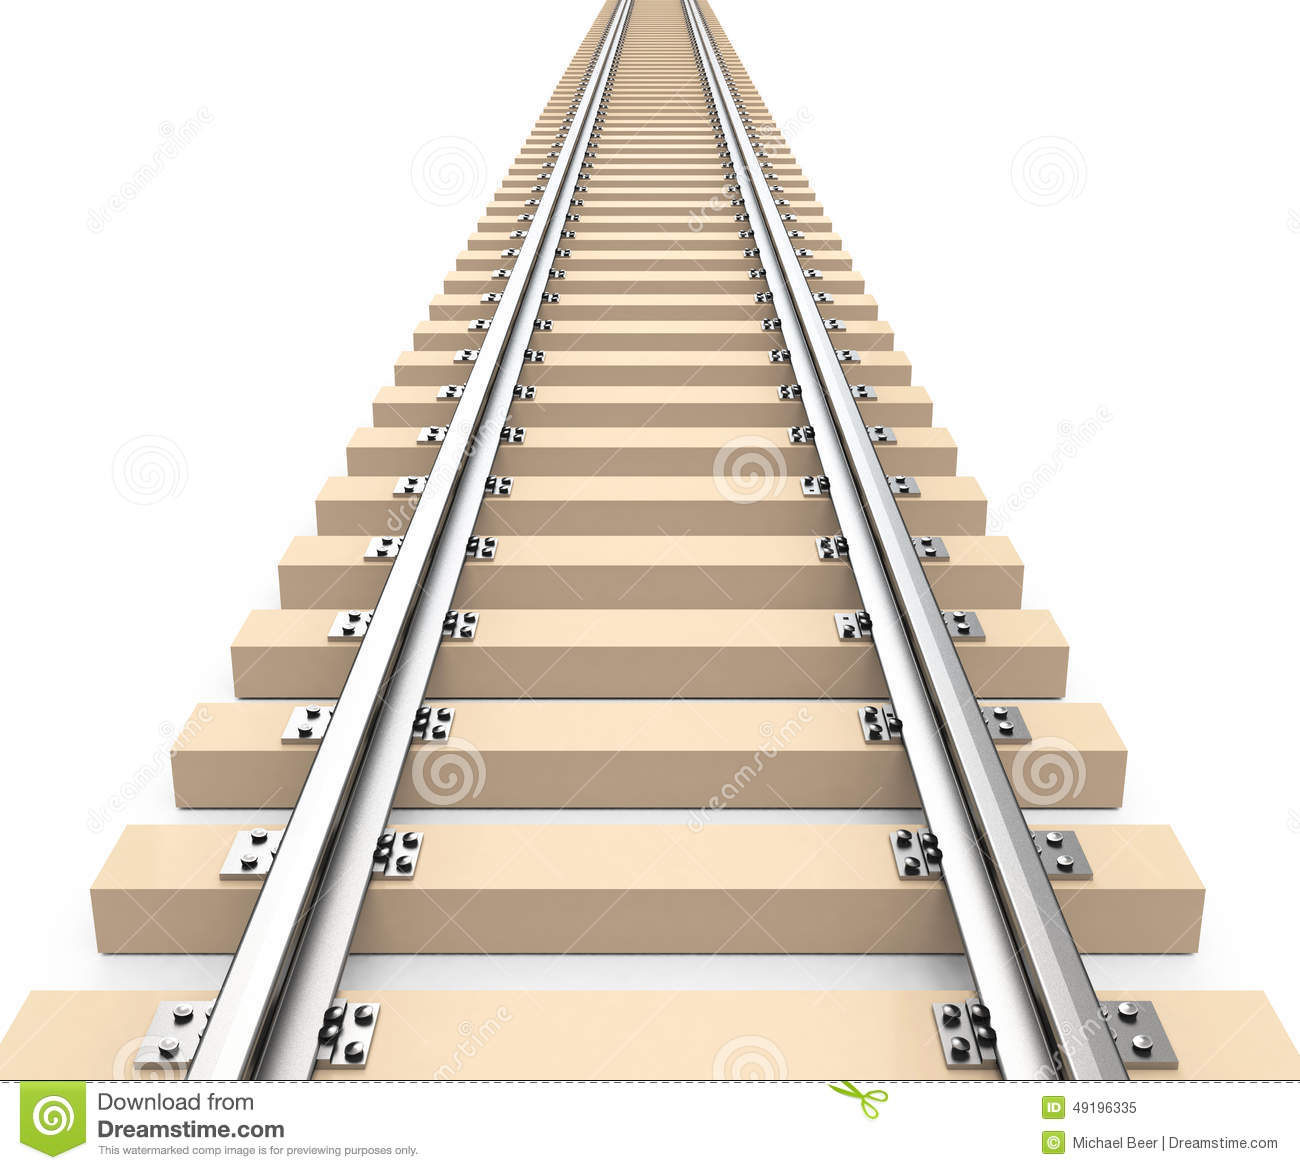 hight resolution of 3d generated picture of a train track